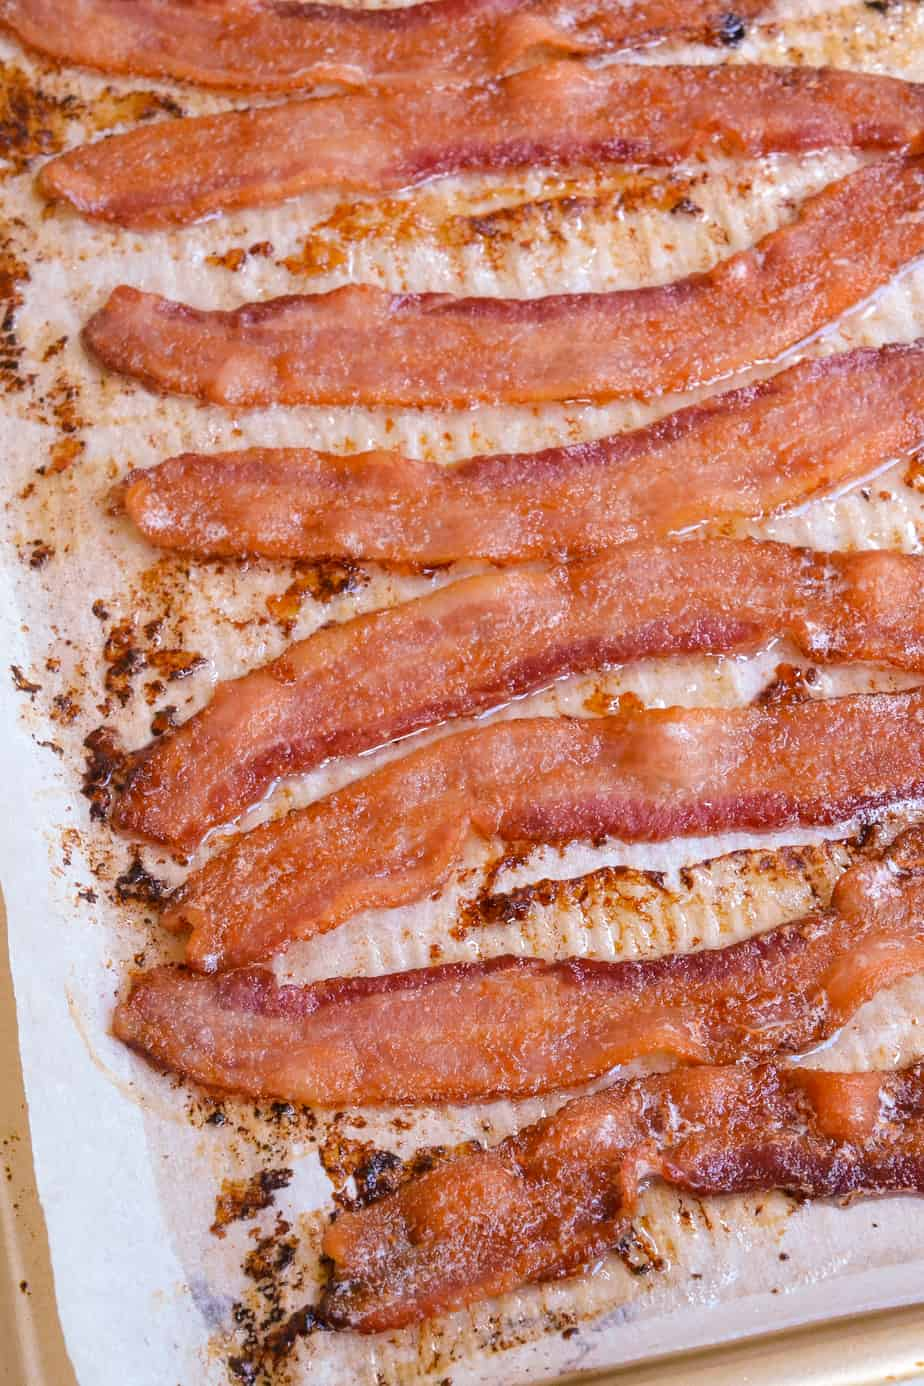 A baking sheet full of crispy cooked oven bacon.